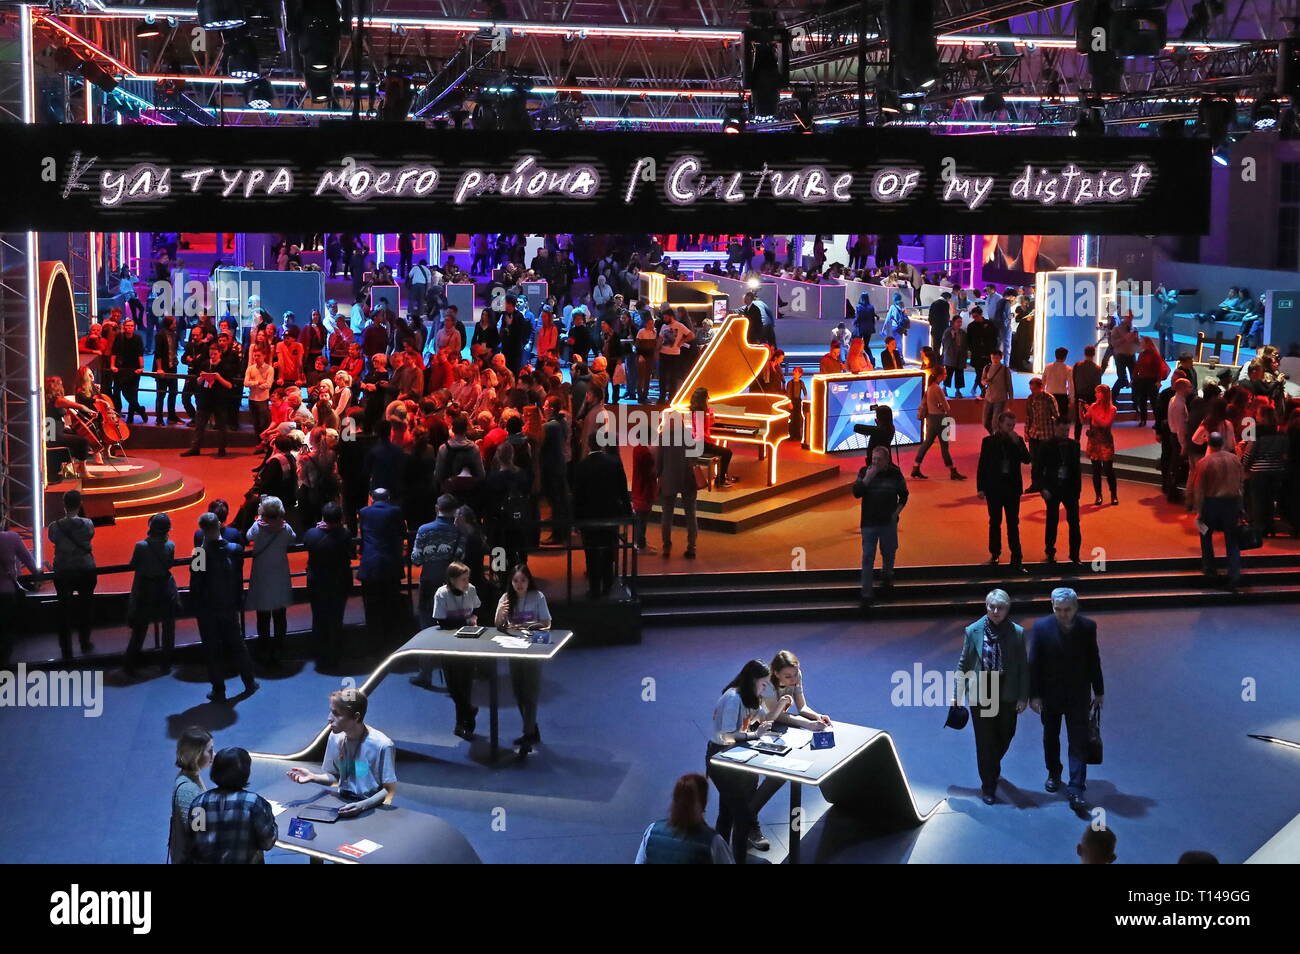 Moscow, Russia. 23rd Mar, 2019. MOSCOW, RUSSIA - MARCH 23, 2019: The opening of the annual Theatre Night event at the Manezh Central Exhibition Hall. Anton Novoderezhkin/TASS Credit: ITAR-TASS News Agency/Alamy Live News Stock Photo